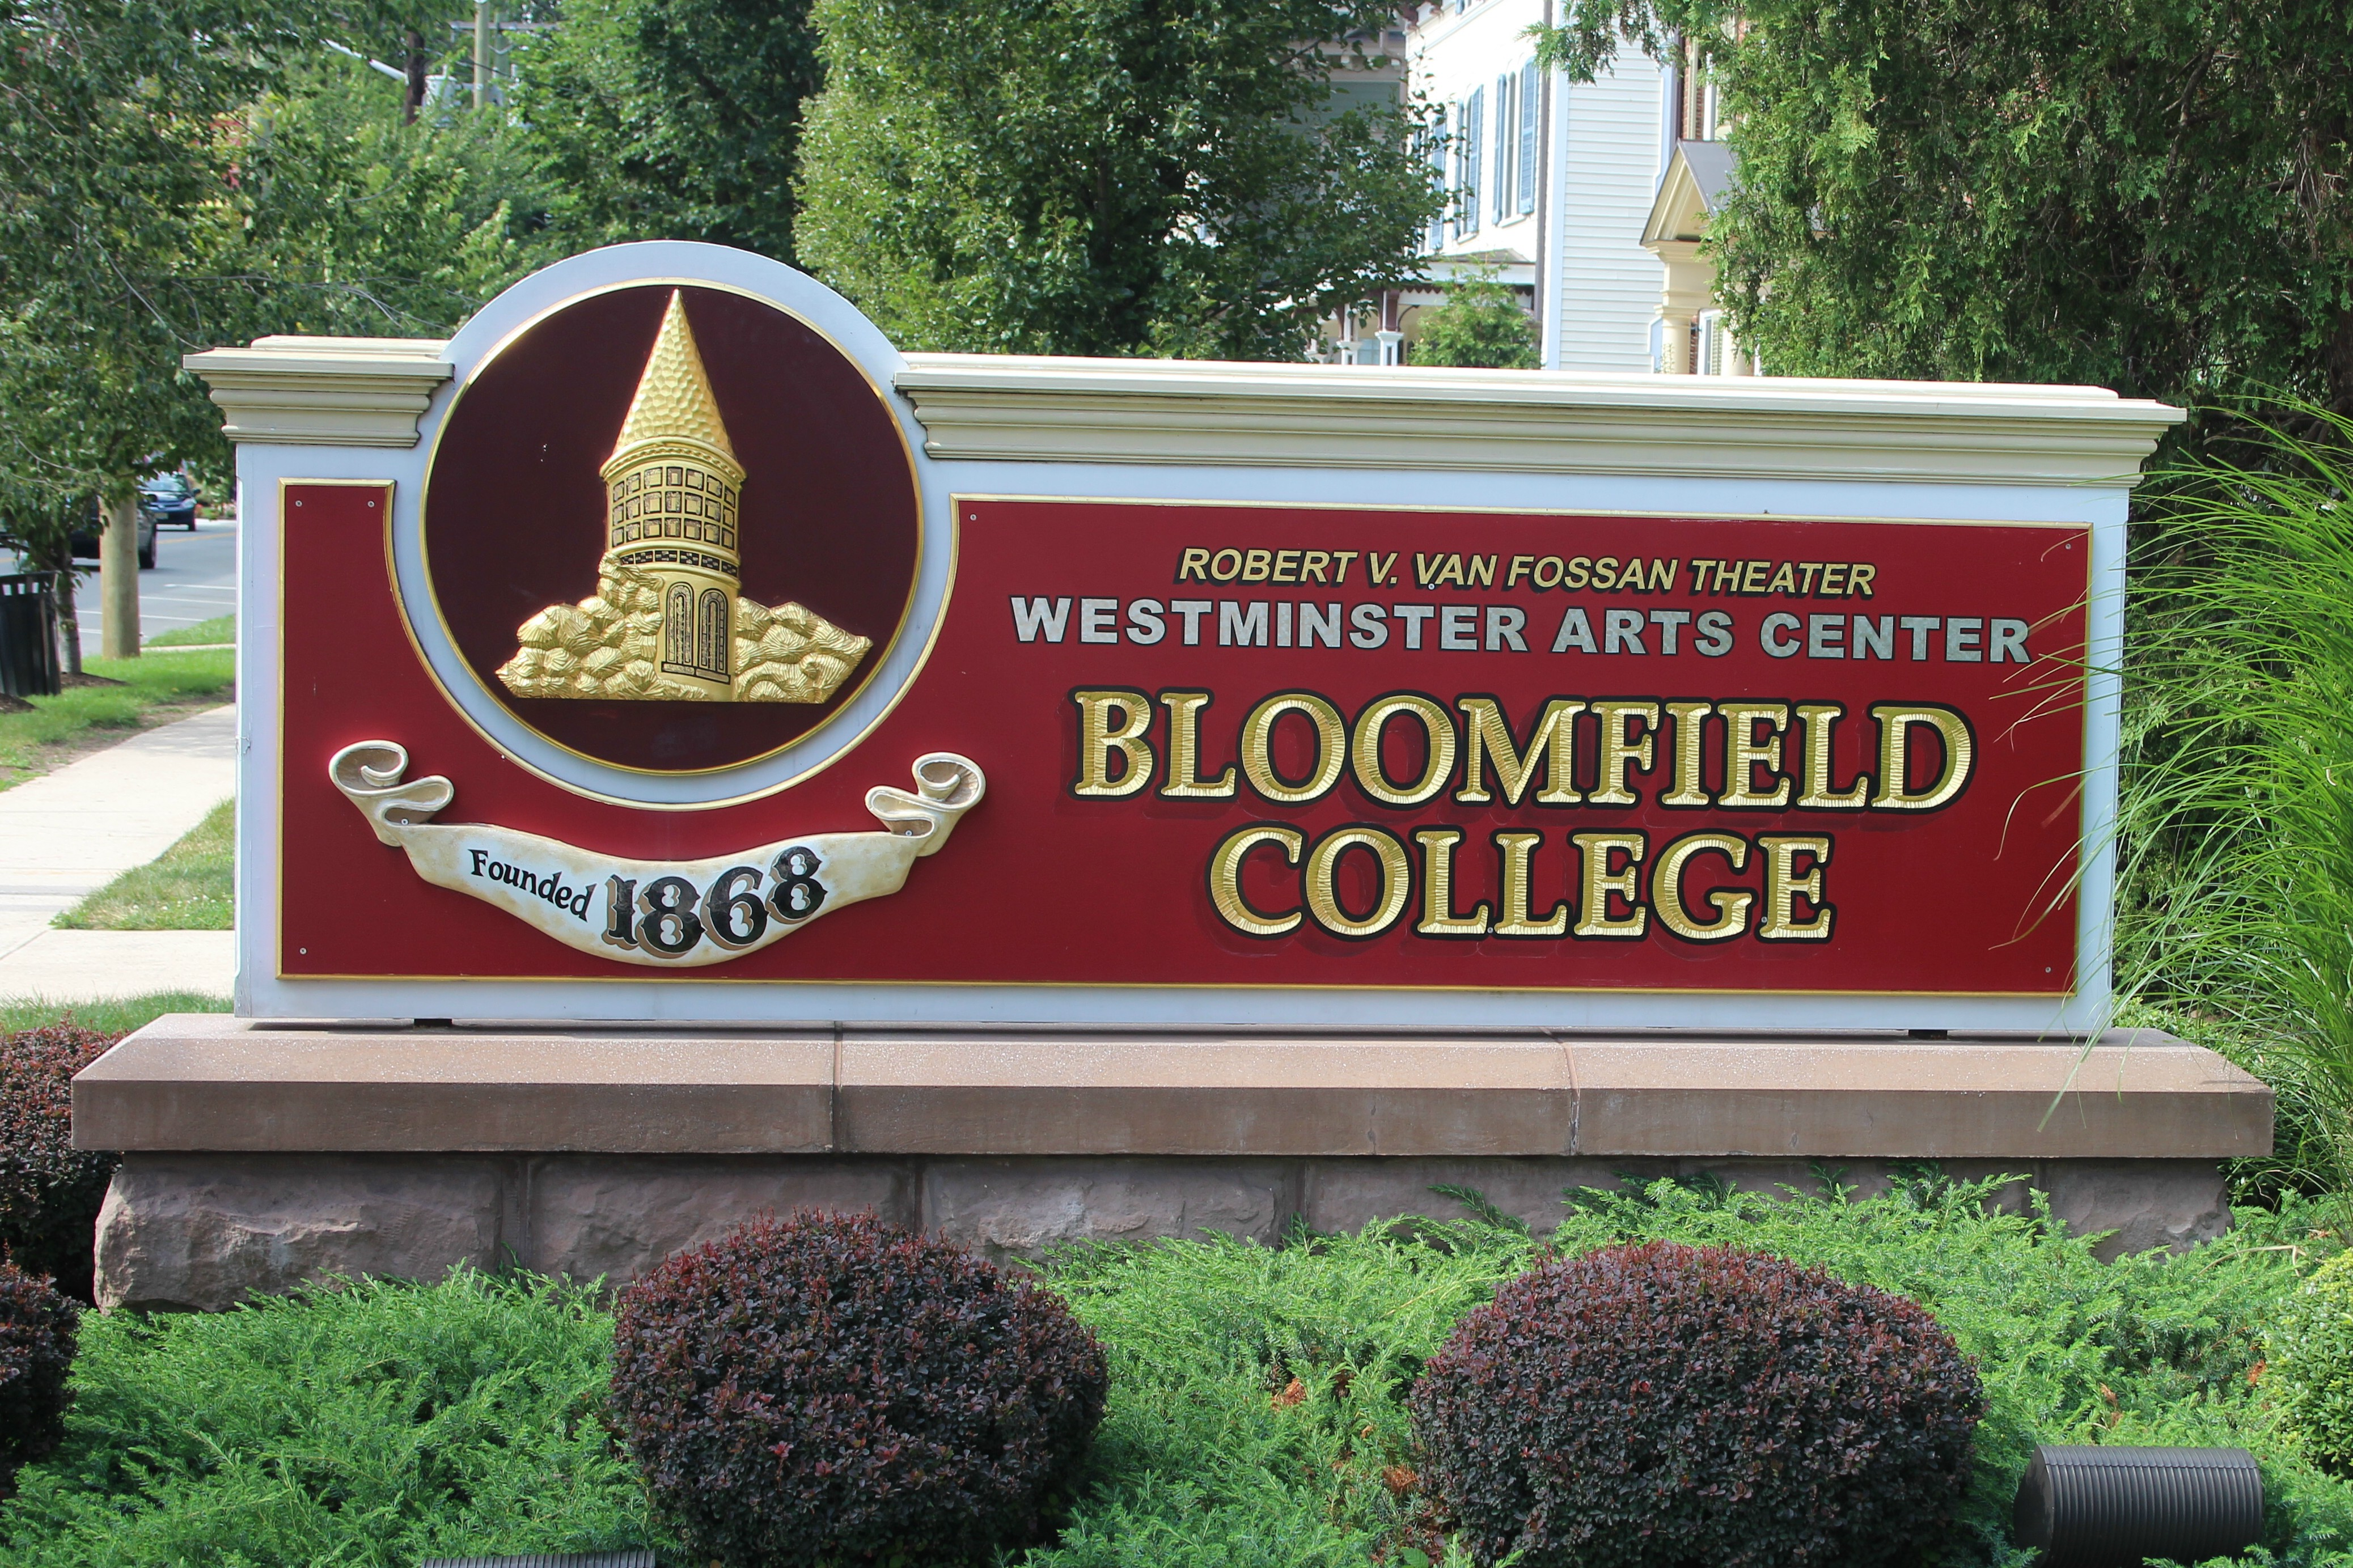 Bloomfield NJ – Bloomfield's NiCori Studios and Productions will kick off  their partnership with Bloomfield College with a Winter Gala on December 16.